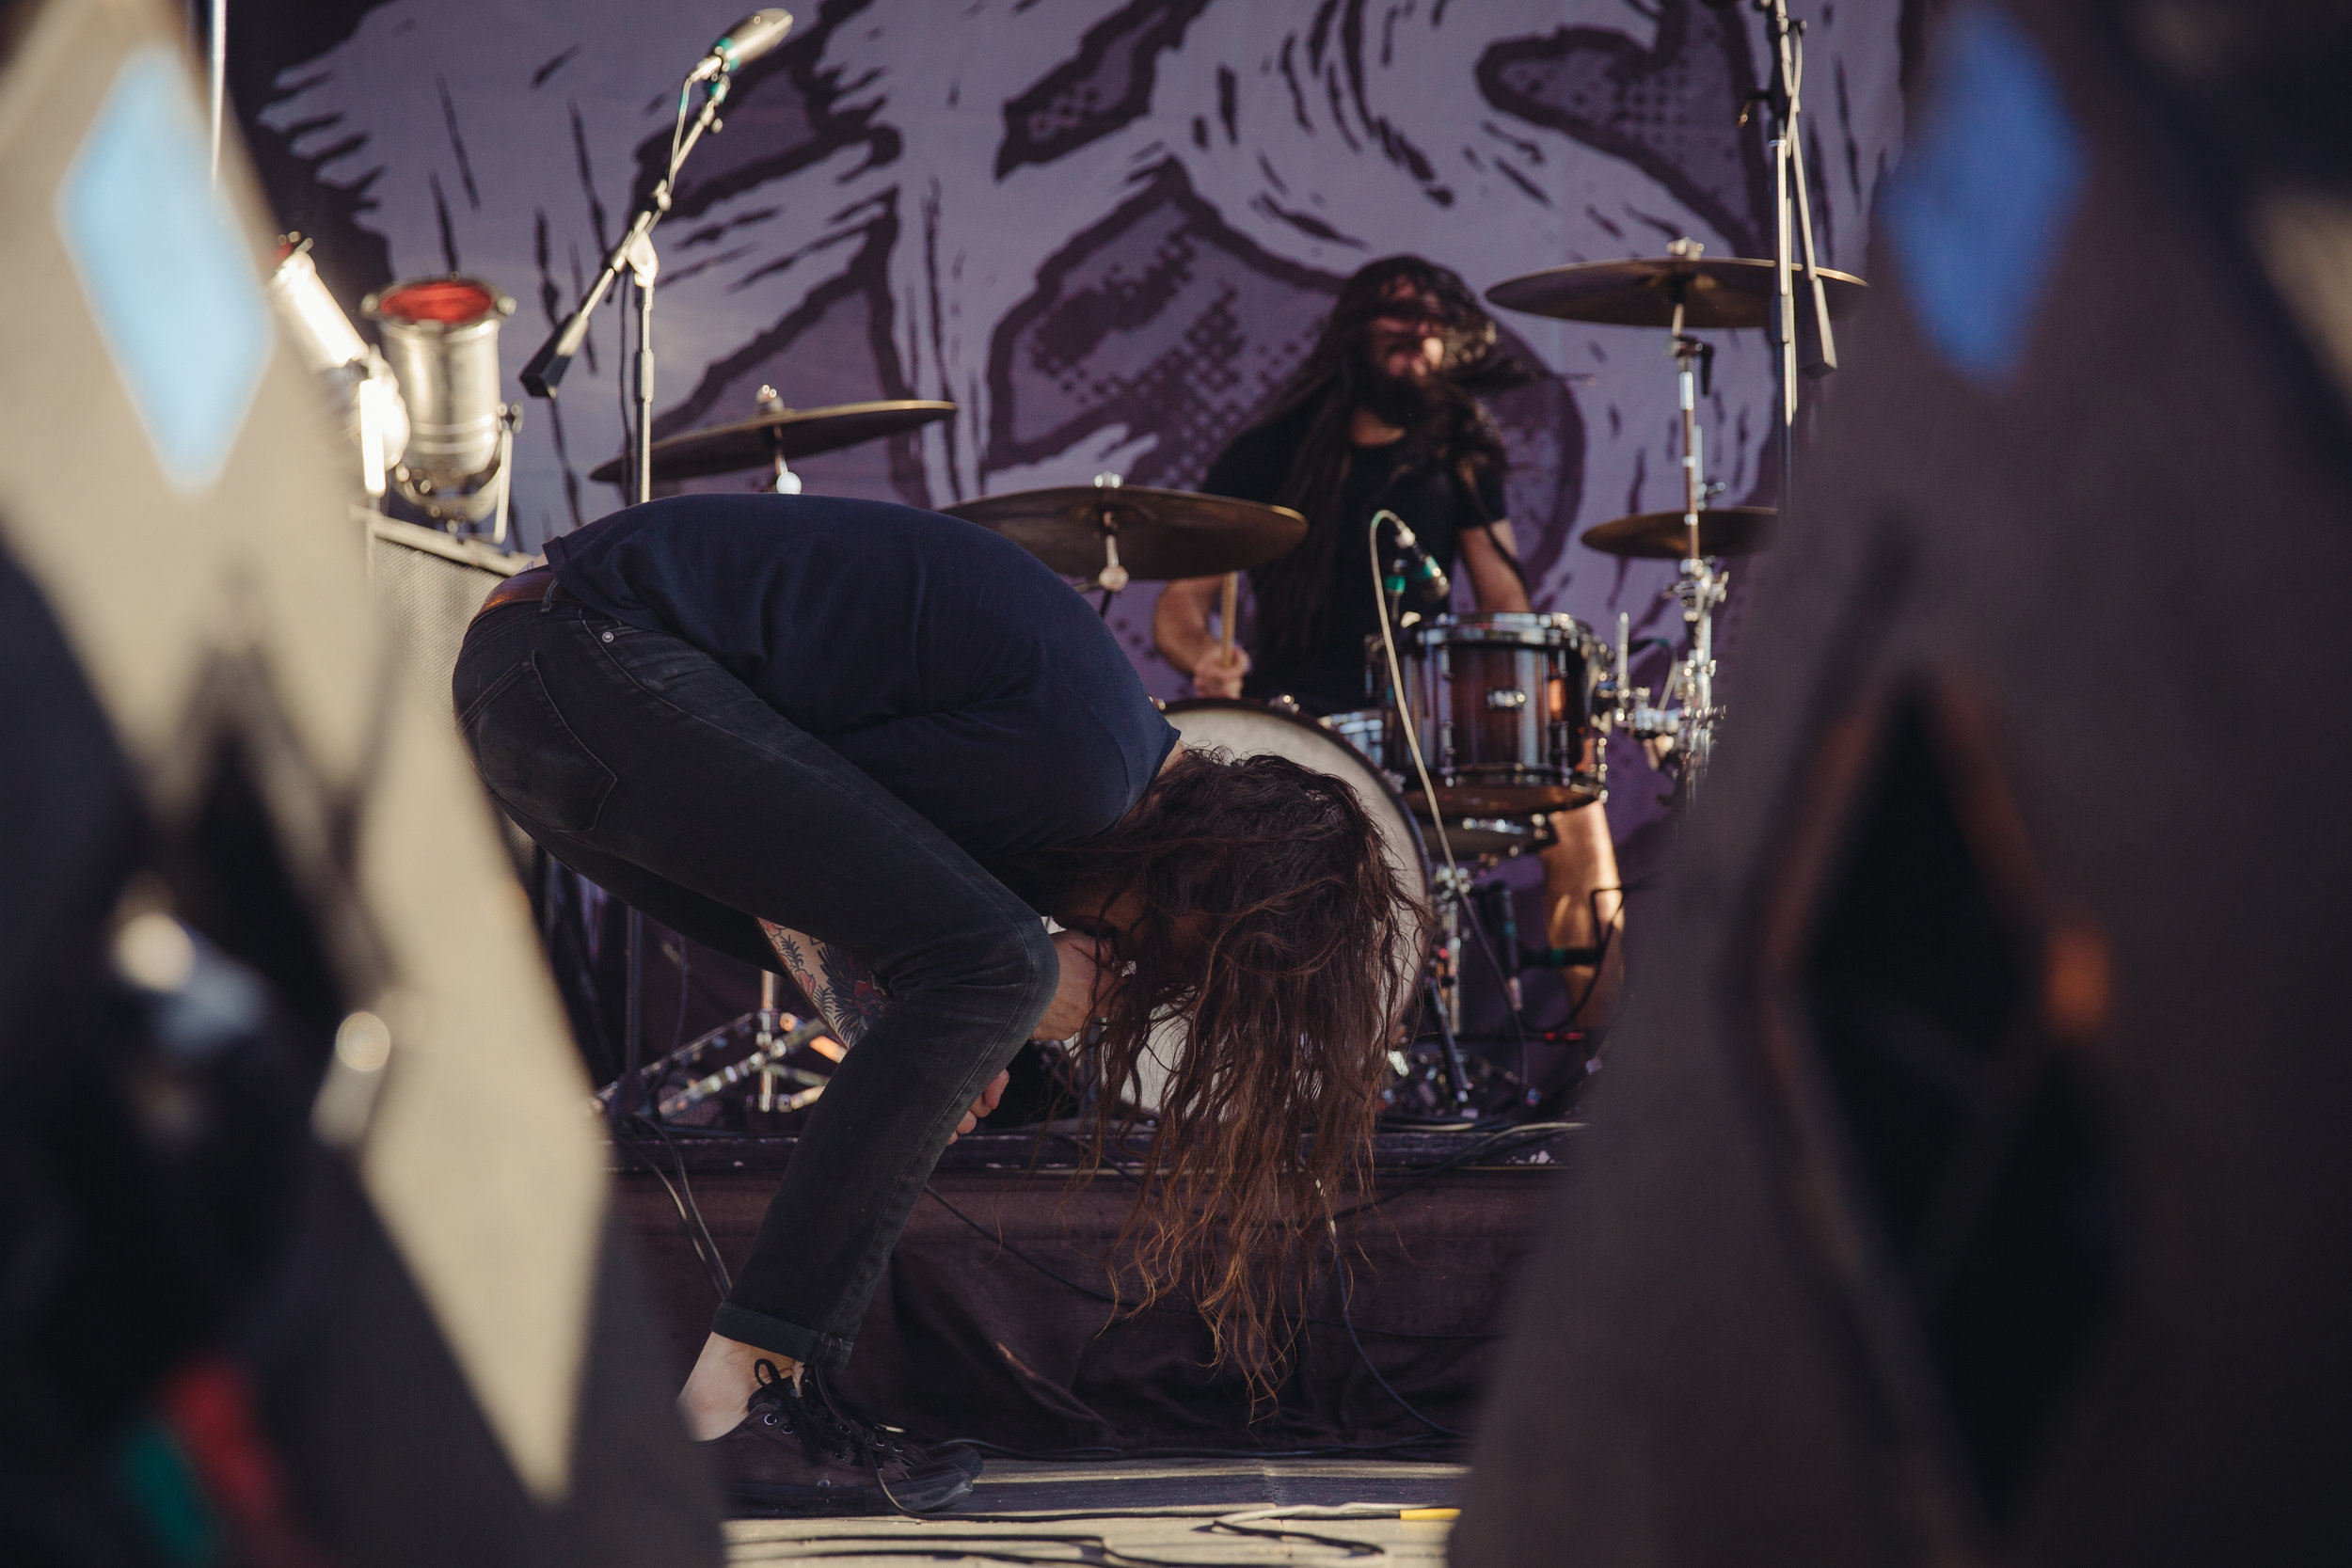 pianos-become-the-teeth---fest-14_23204235501_o.jpg